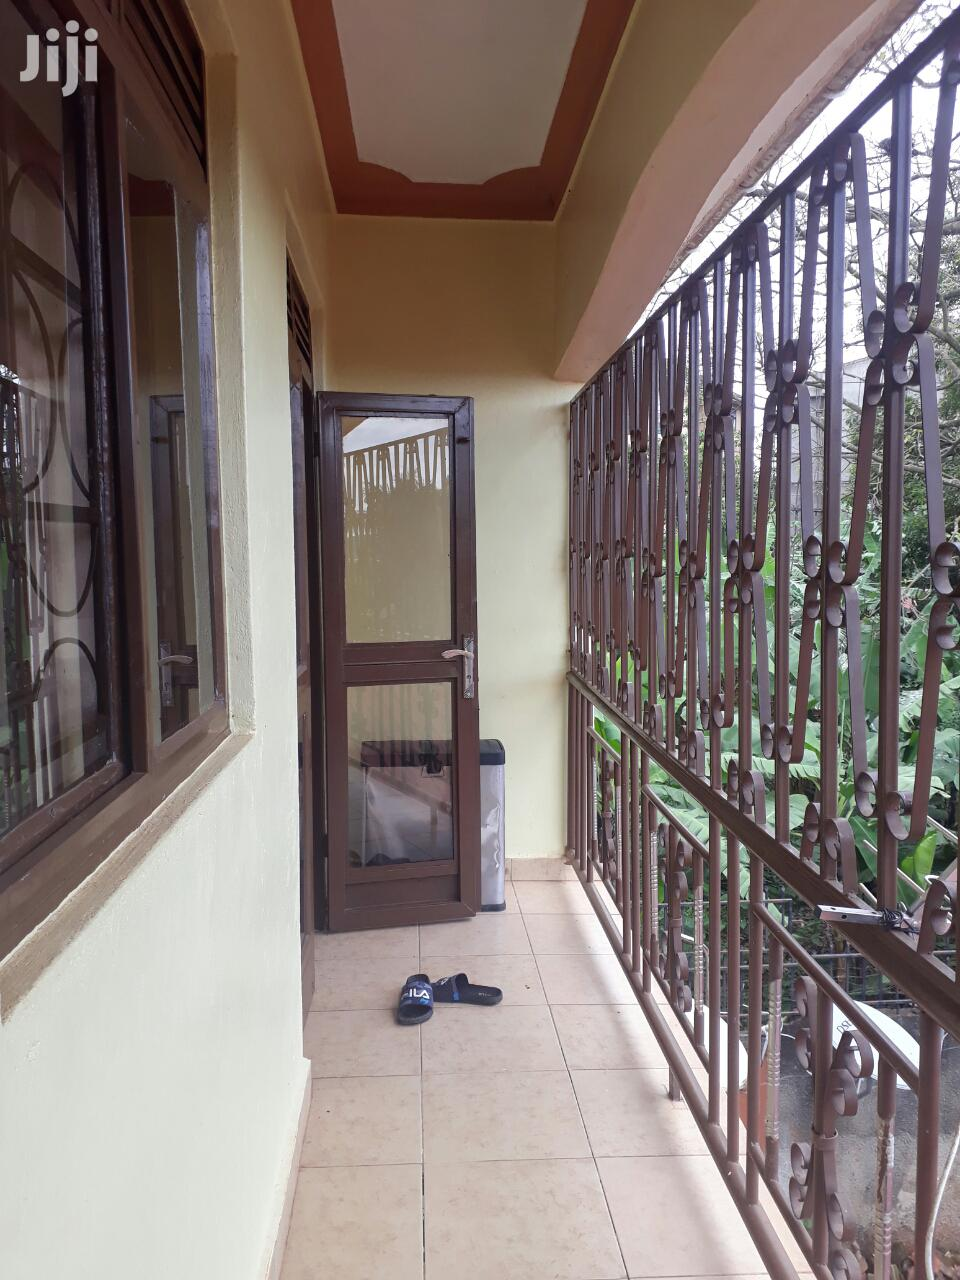 Furnished Houses At Munyonyo In A Well Developed And Accessible | Houses & Apartments For Rent for sale in Kampala, Central Region, Uganda